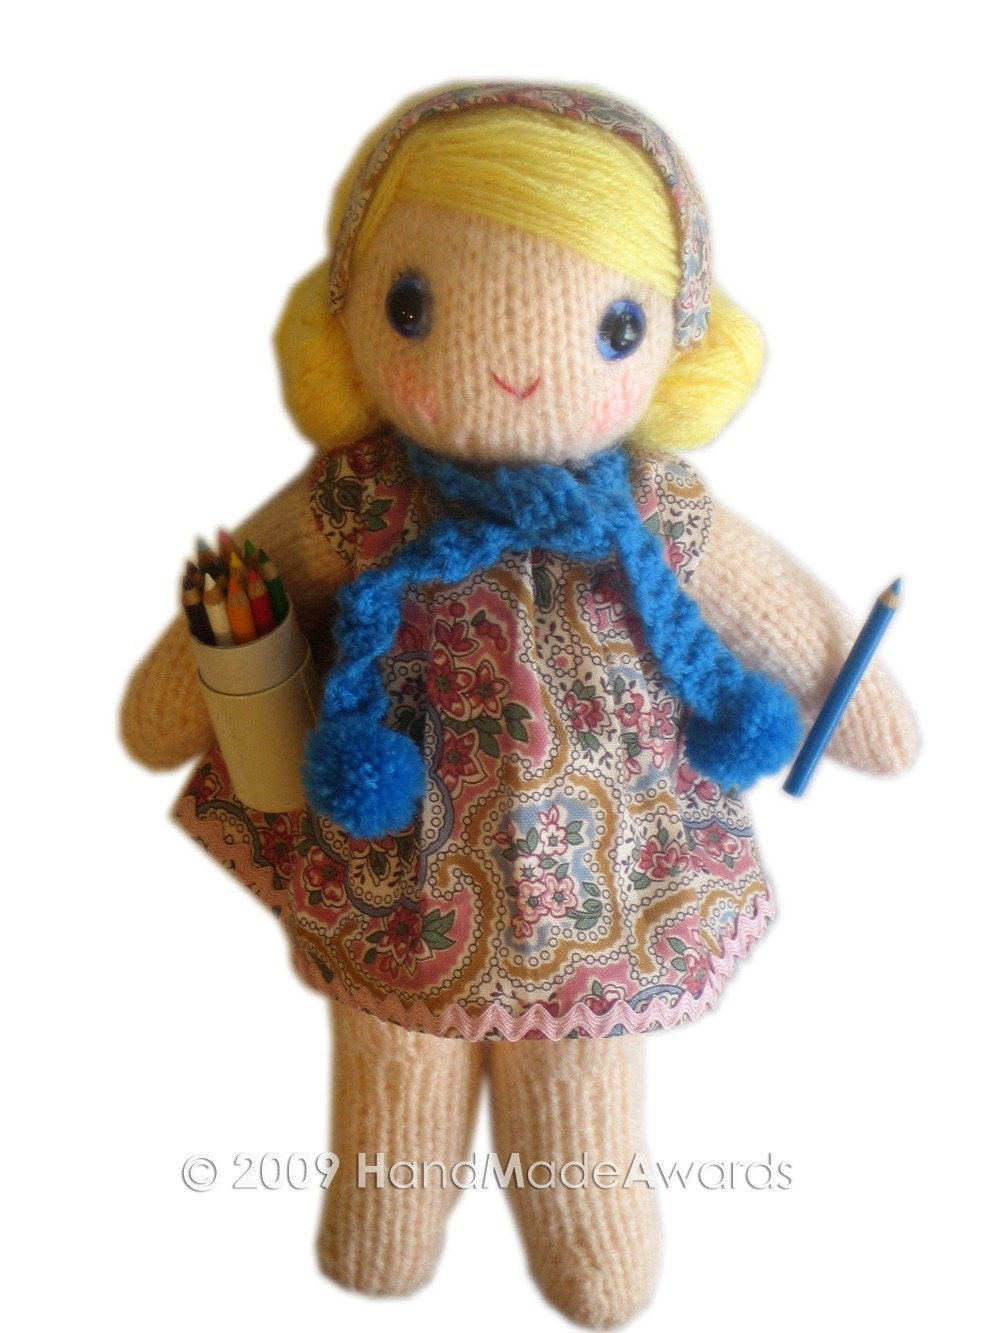 SWEETEST MONICA girly DOLL pocket friend KNIT PATTERN pdf EMAIL by HandMadeAwards